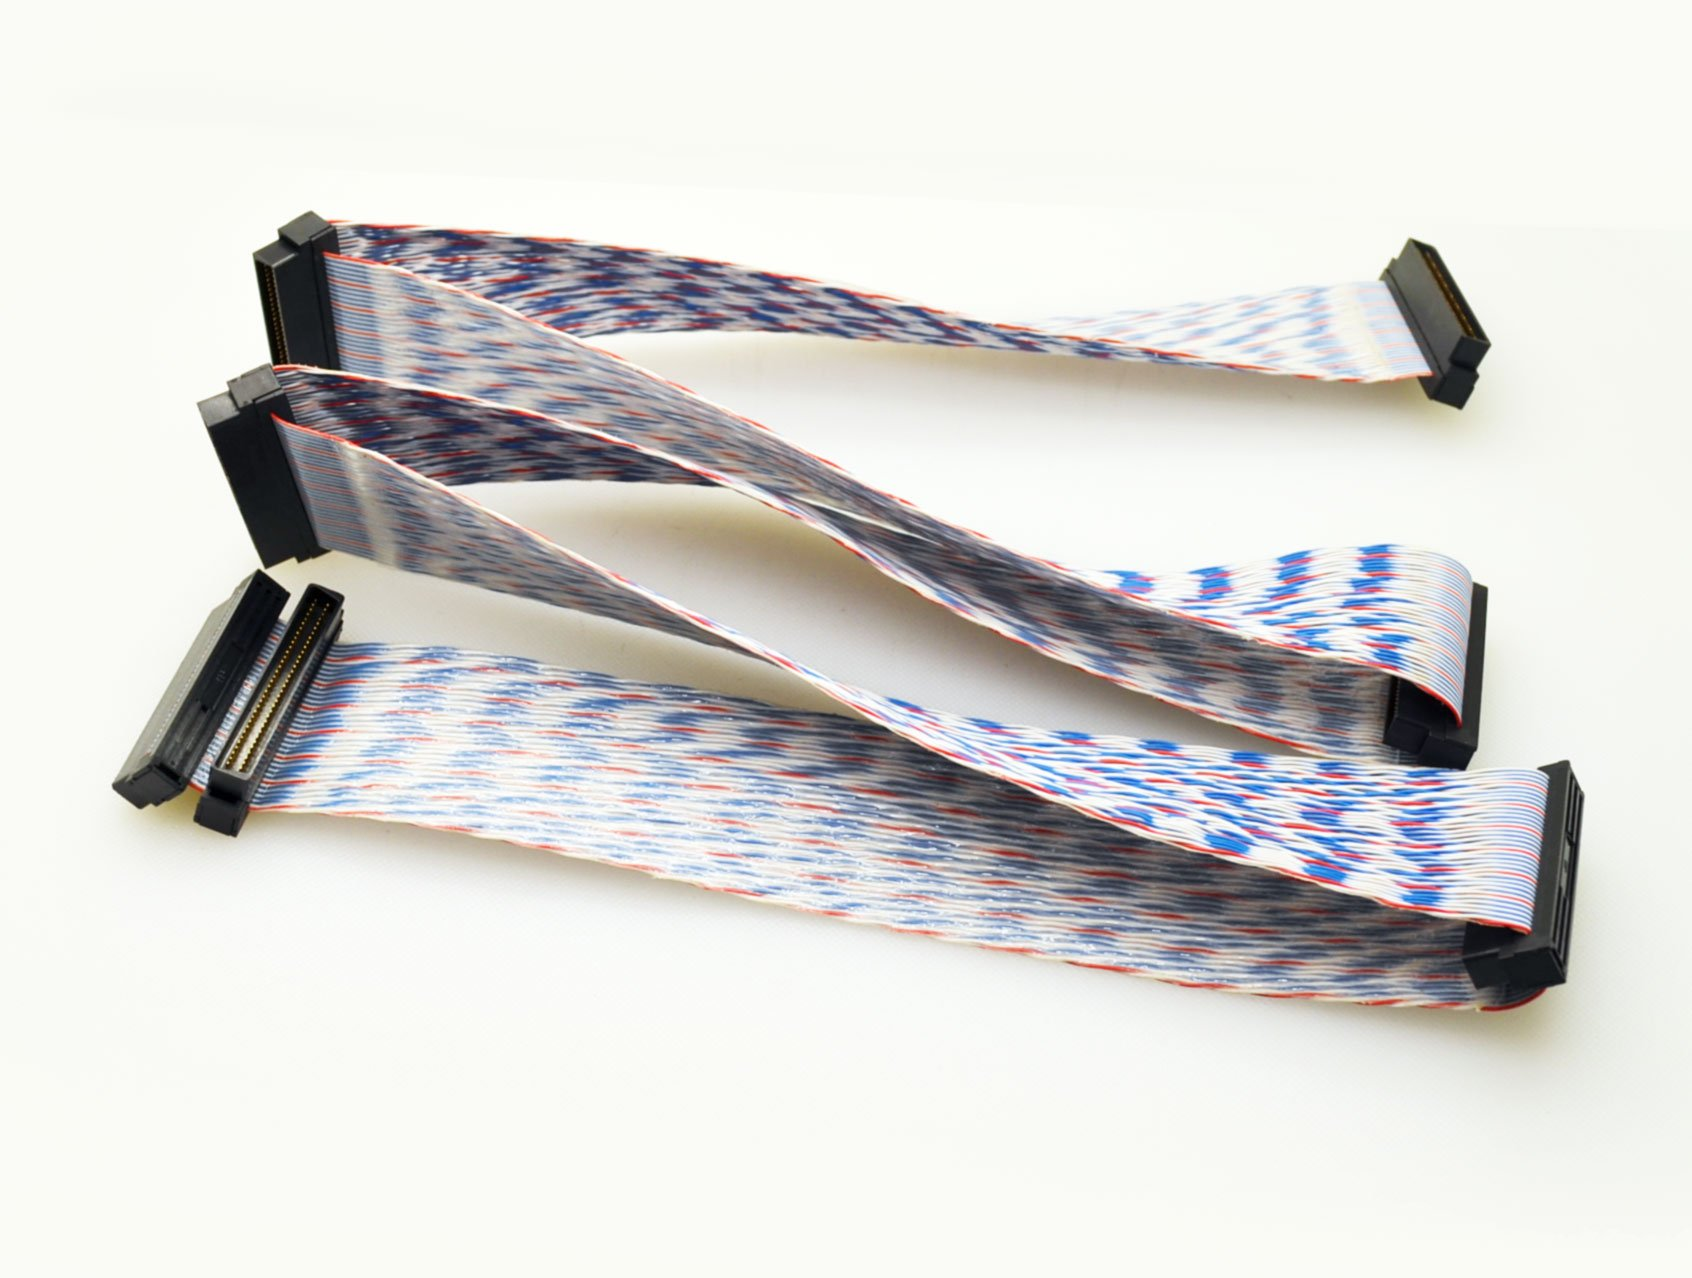 Internal 68 Pin SCSI Ribbon Cable - 5 Device SCSI Cable by PartsCollection®